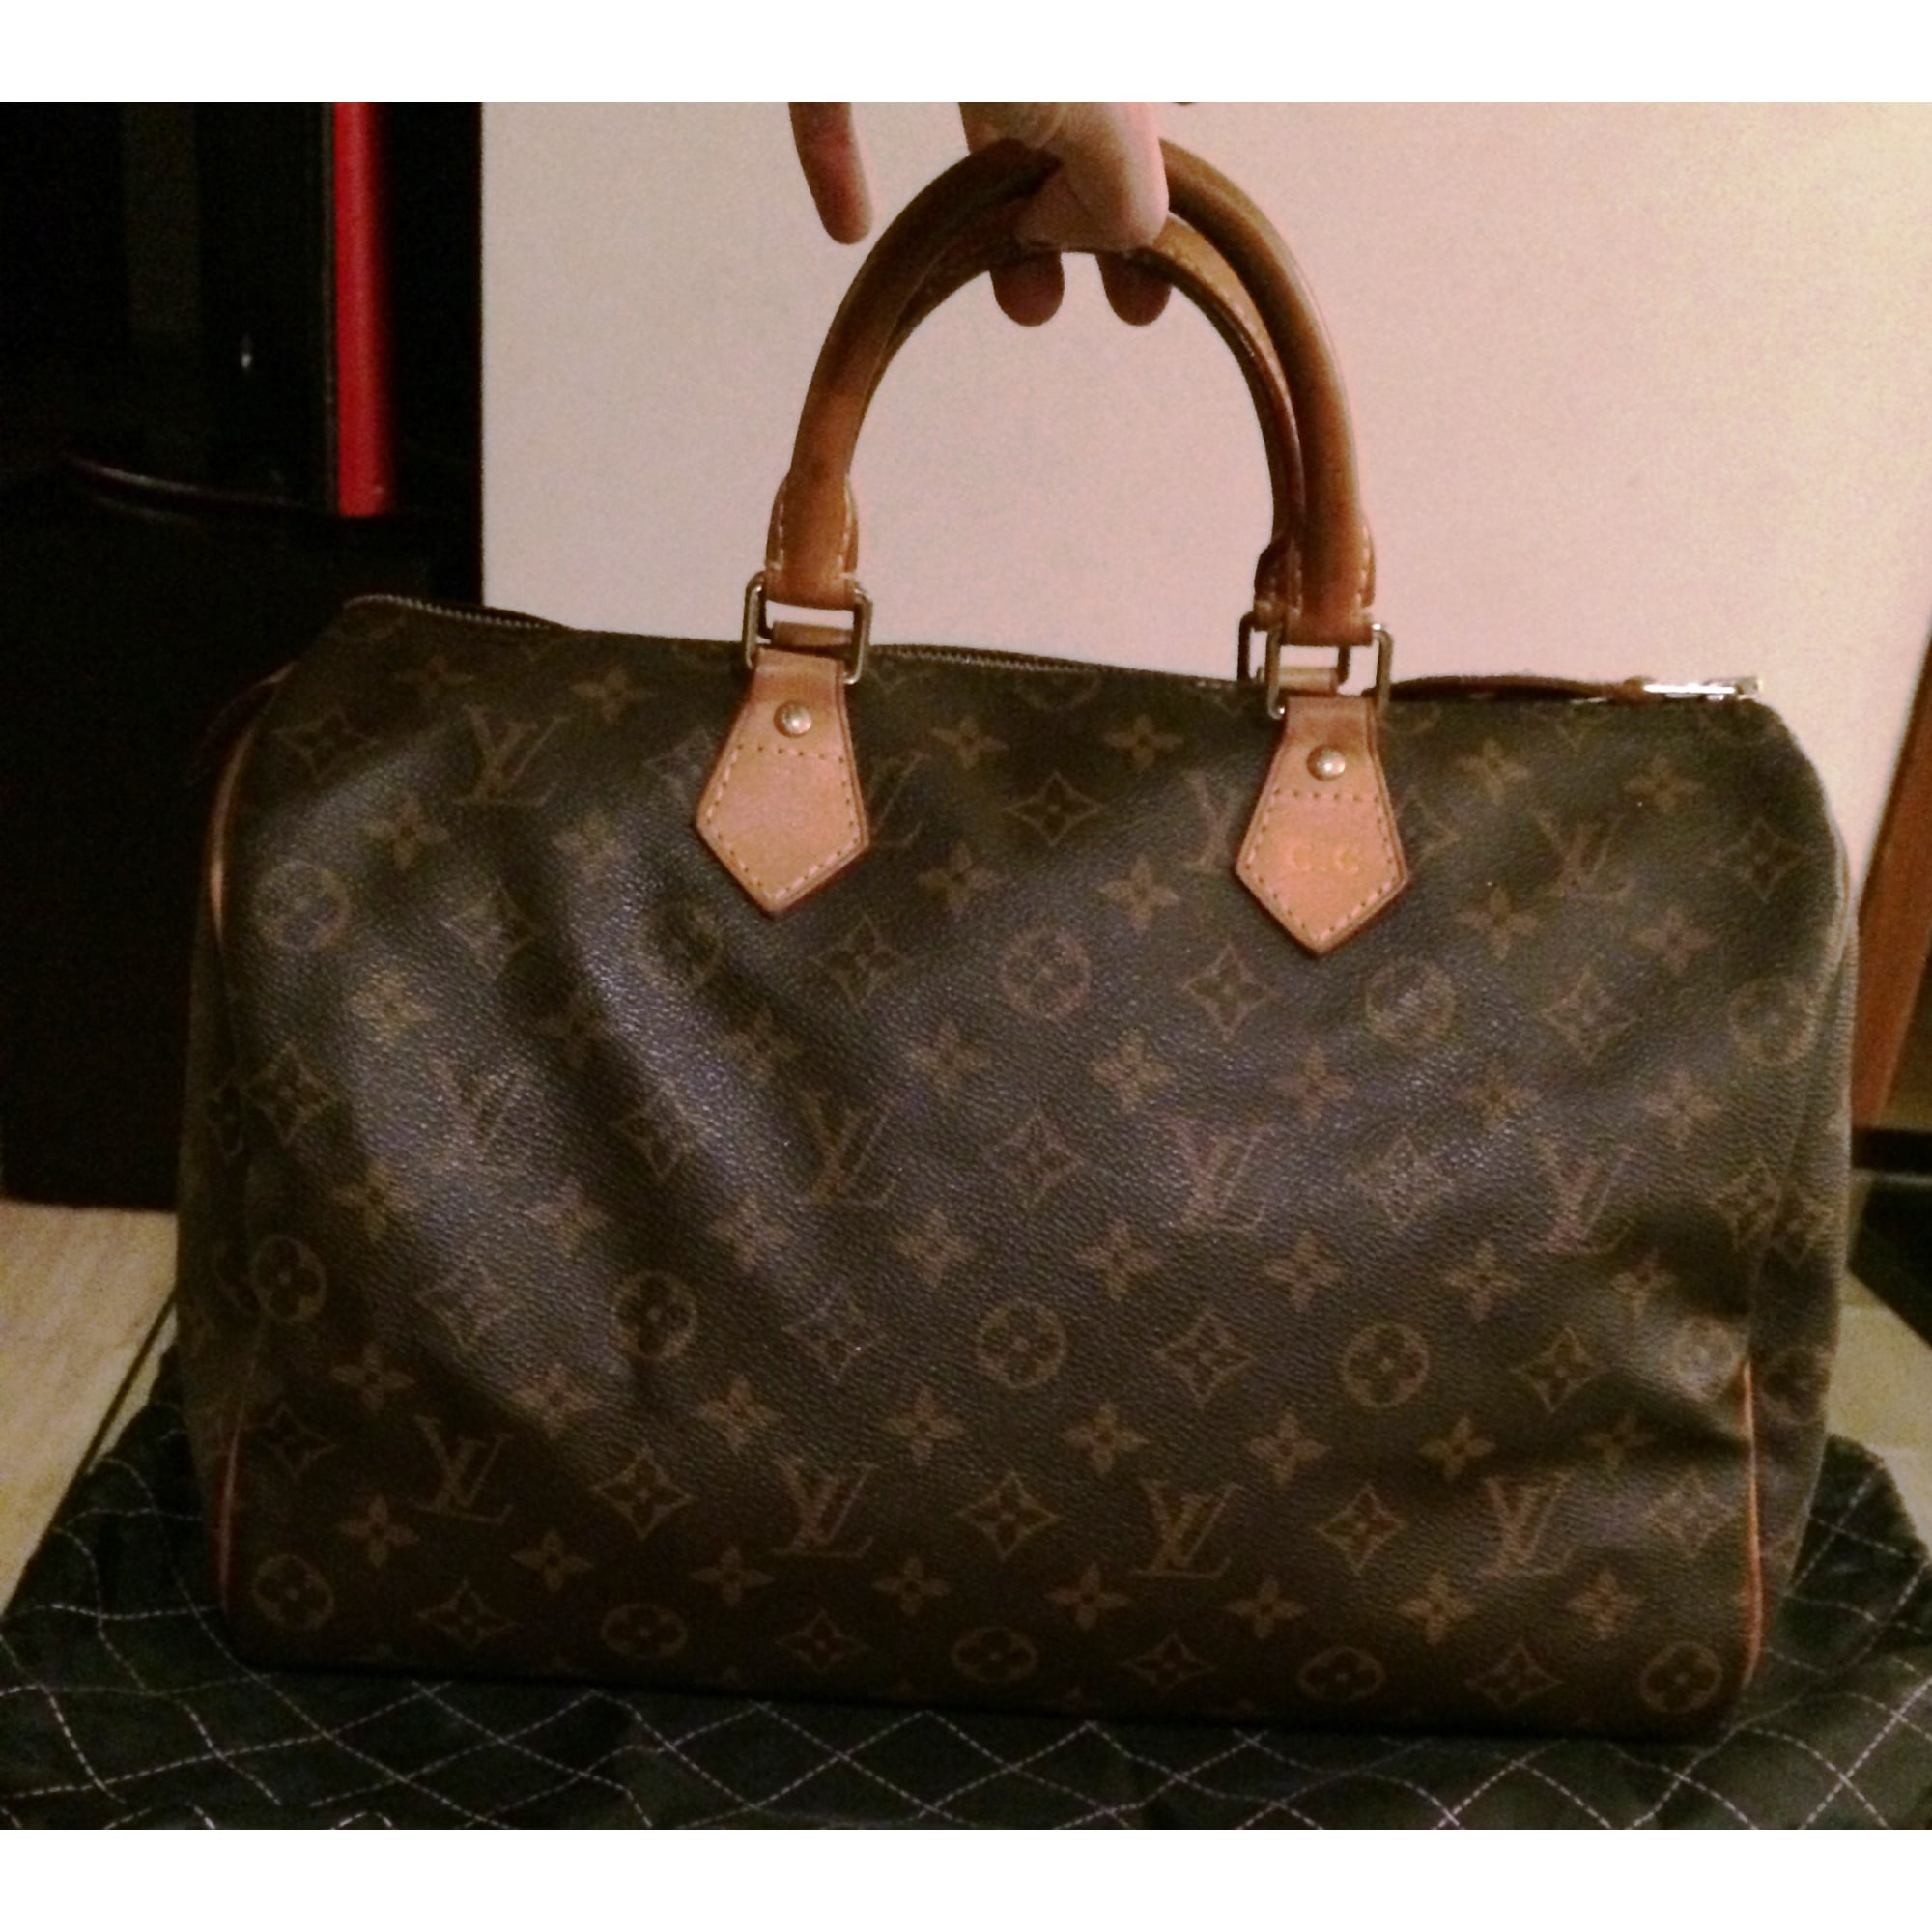 03bb4d94a5 Borsetta in pelle LOUIS VUITTON Speedy 35 Monogram louis vuitton Marron  beige